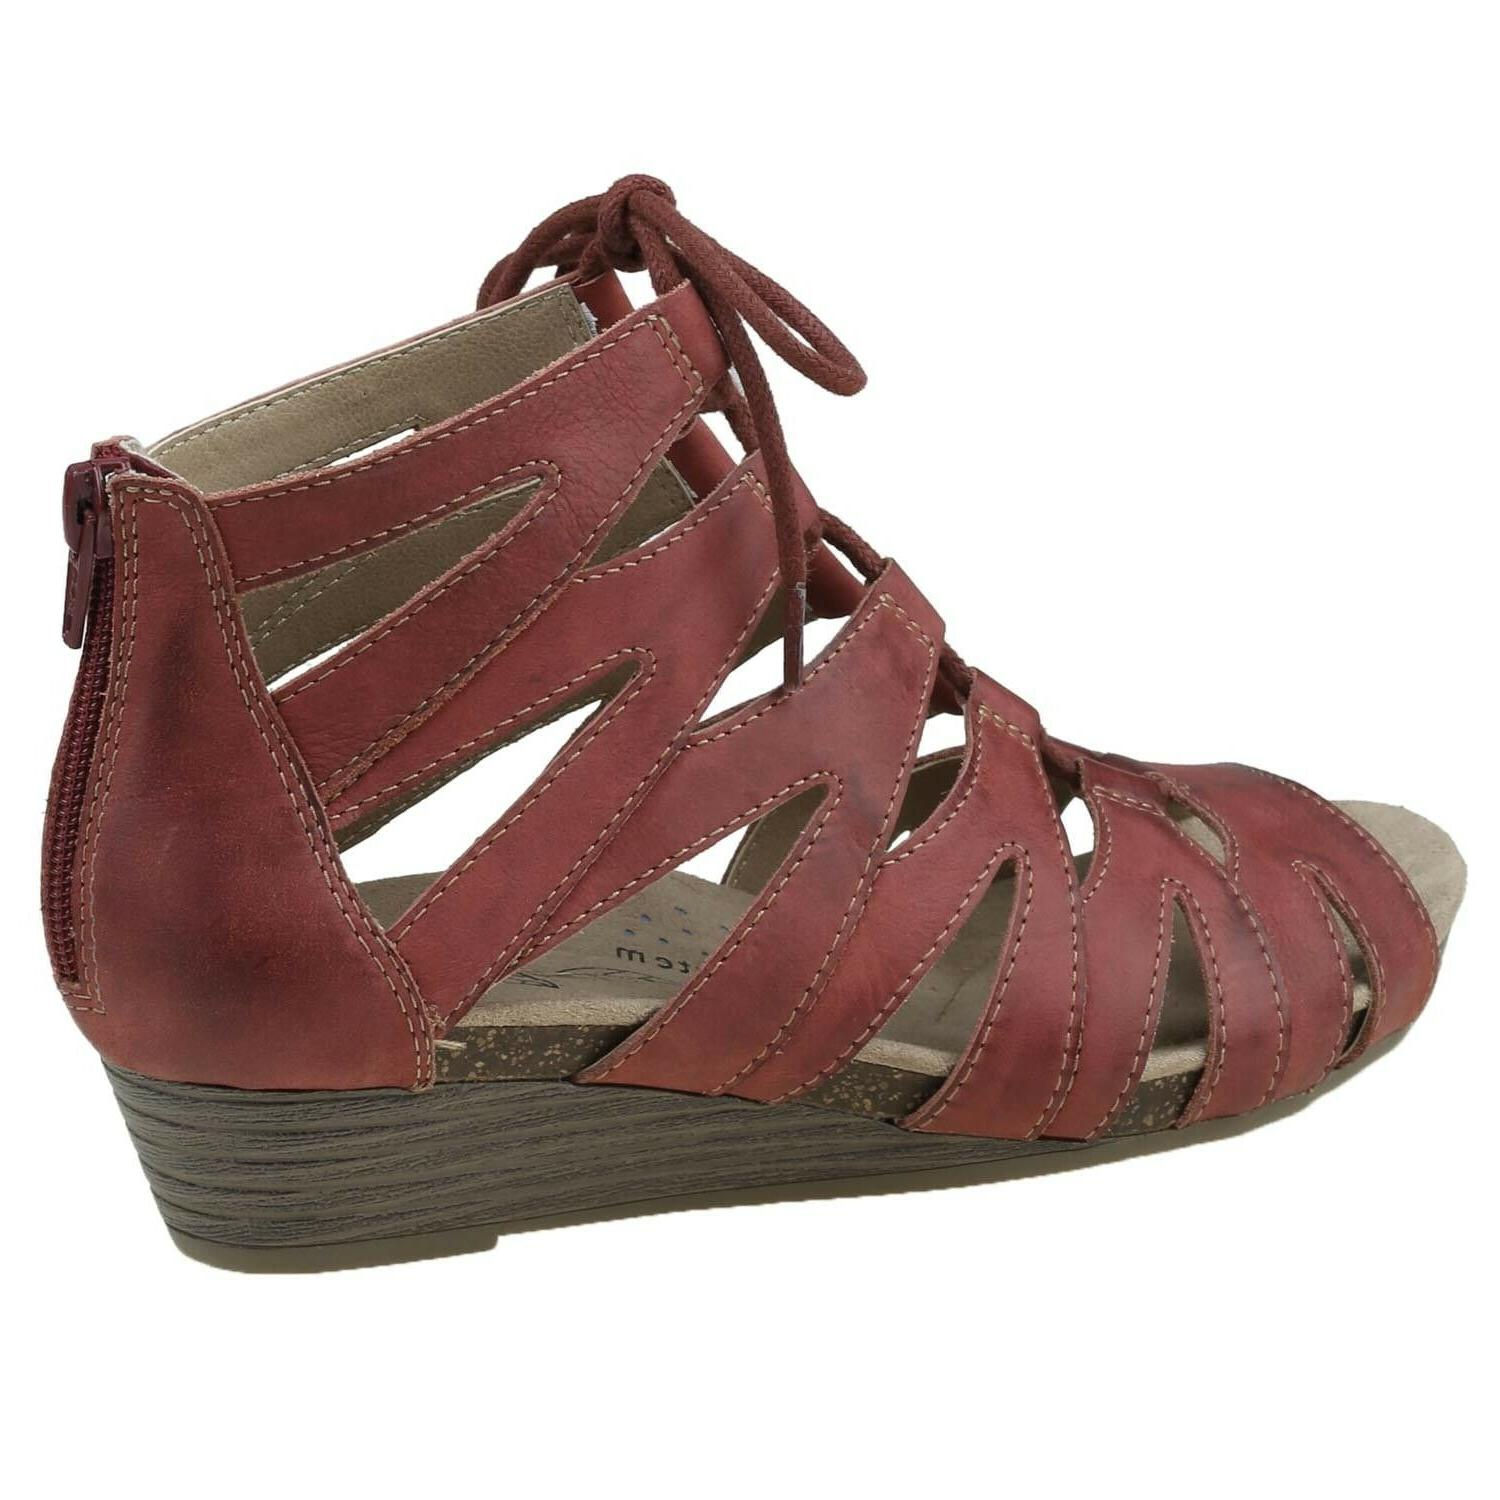 Earth Origins Sandals Leather Lace Women's